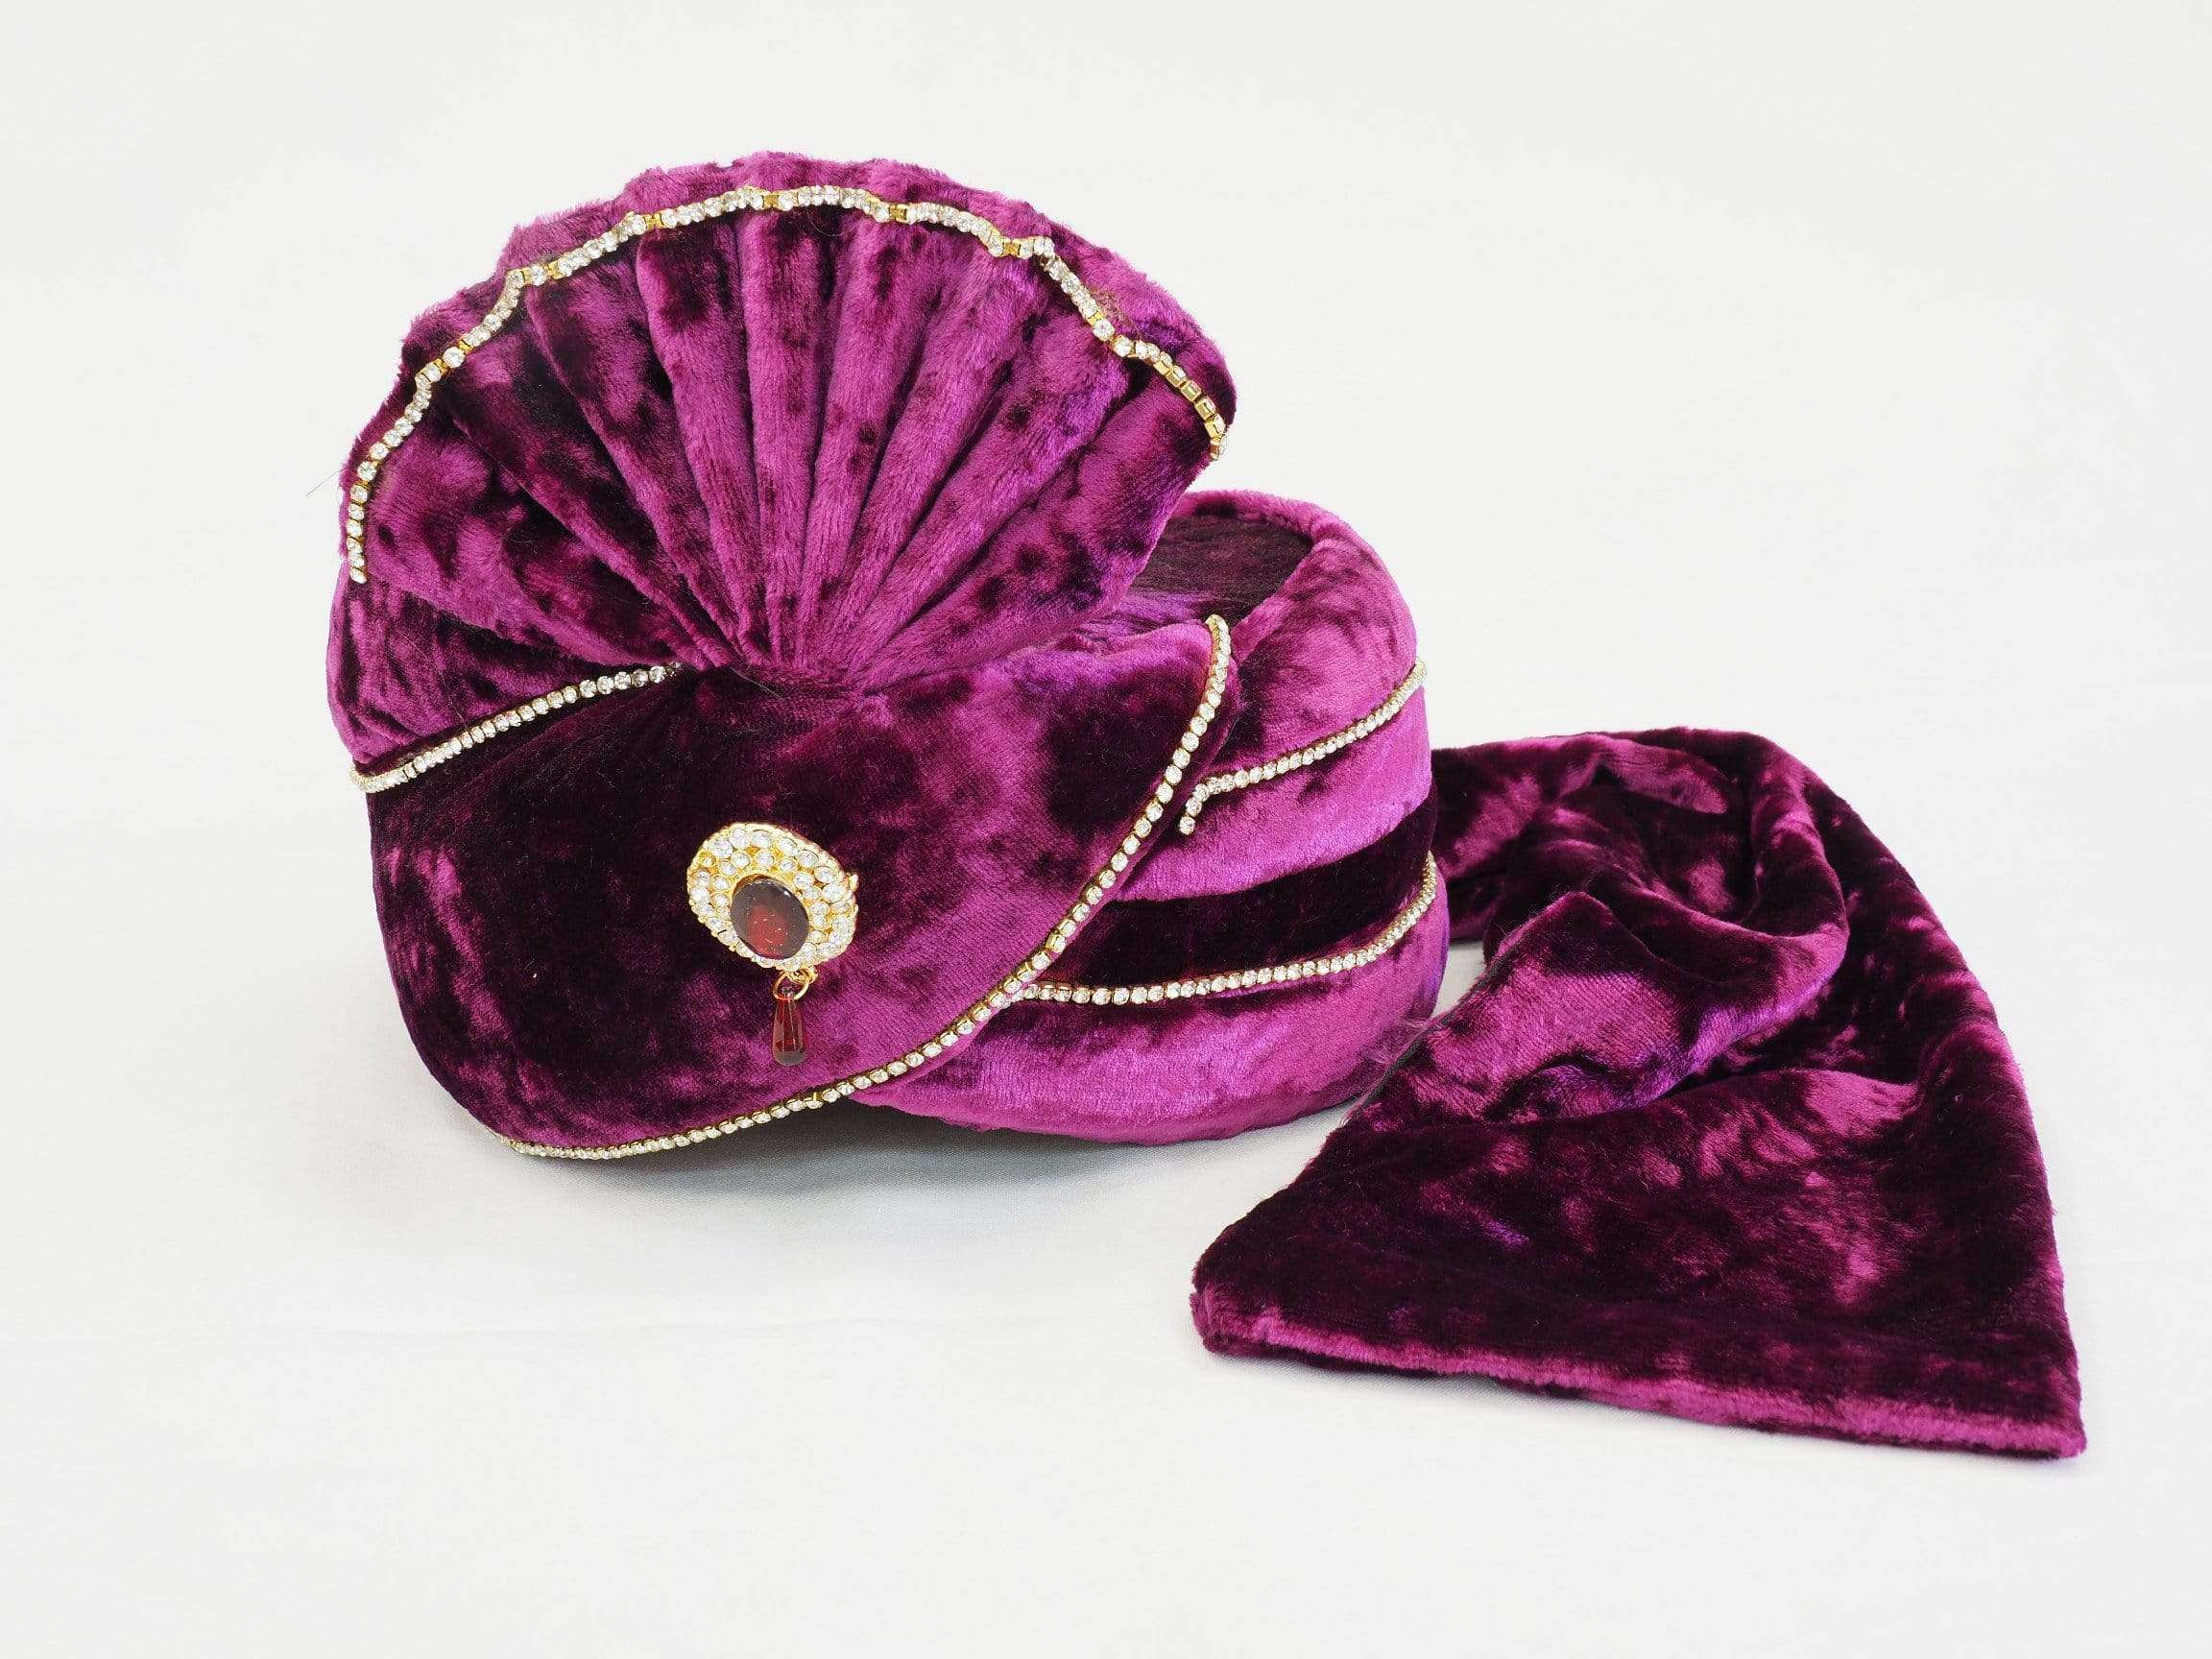 Well made Purple Velvet Turban 05C17 -  Bollywood Party, Weddings Fancy Dress PC635PUR - Prachy Creations